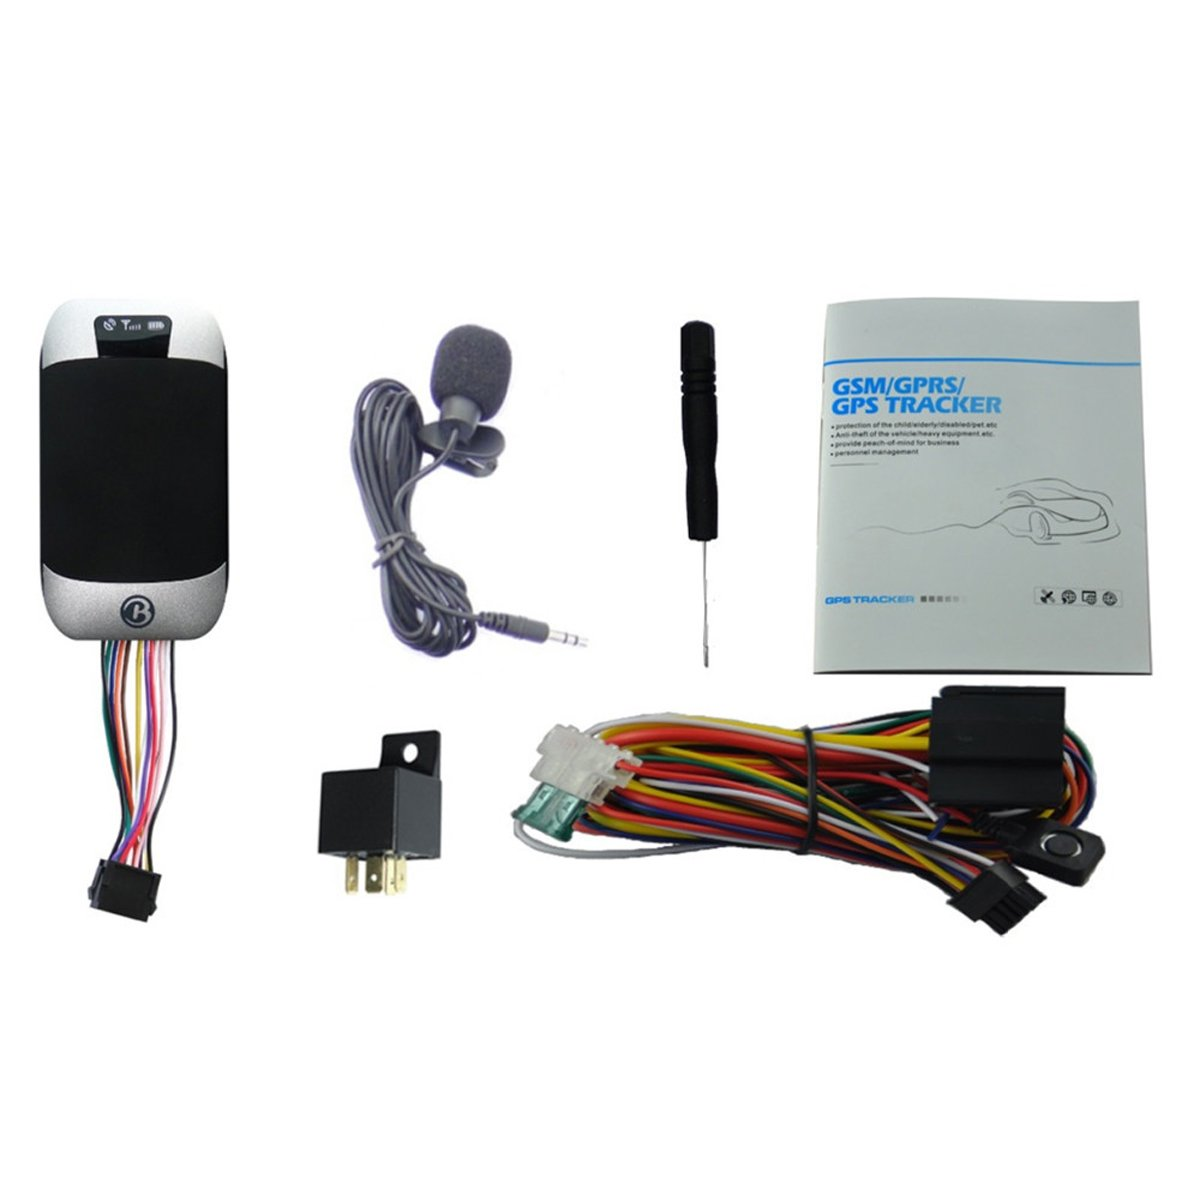 ATian GPS303G Vehicle Car GSM//GPRS// GPS Tracker Tracking Device System Google maps Remote Control